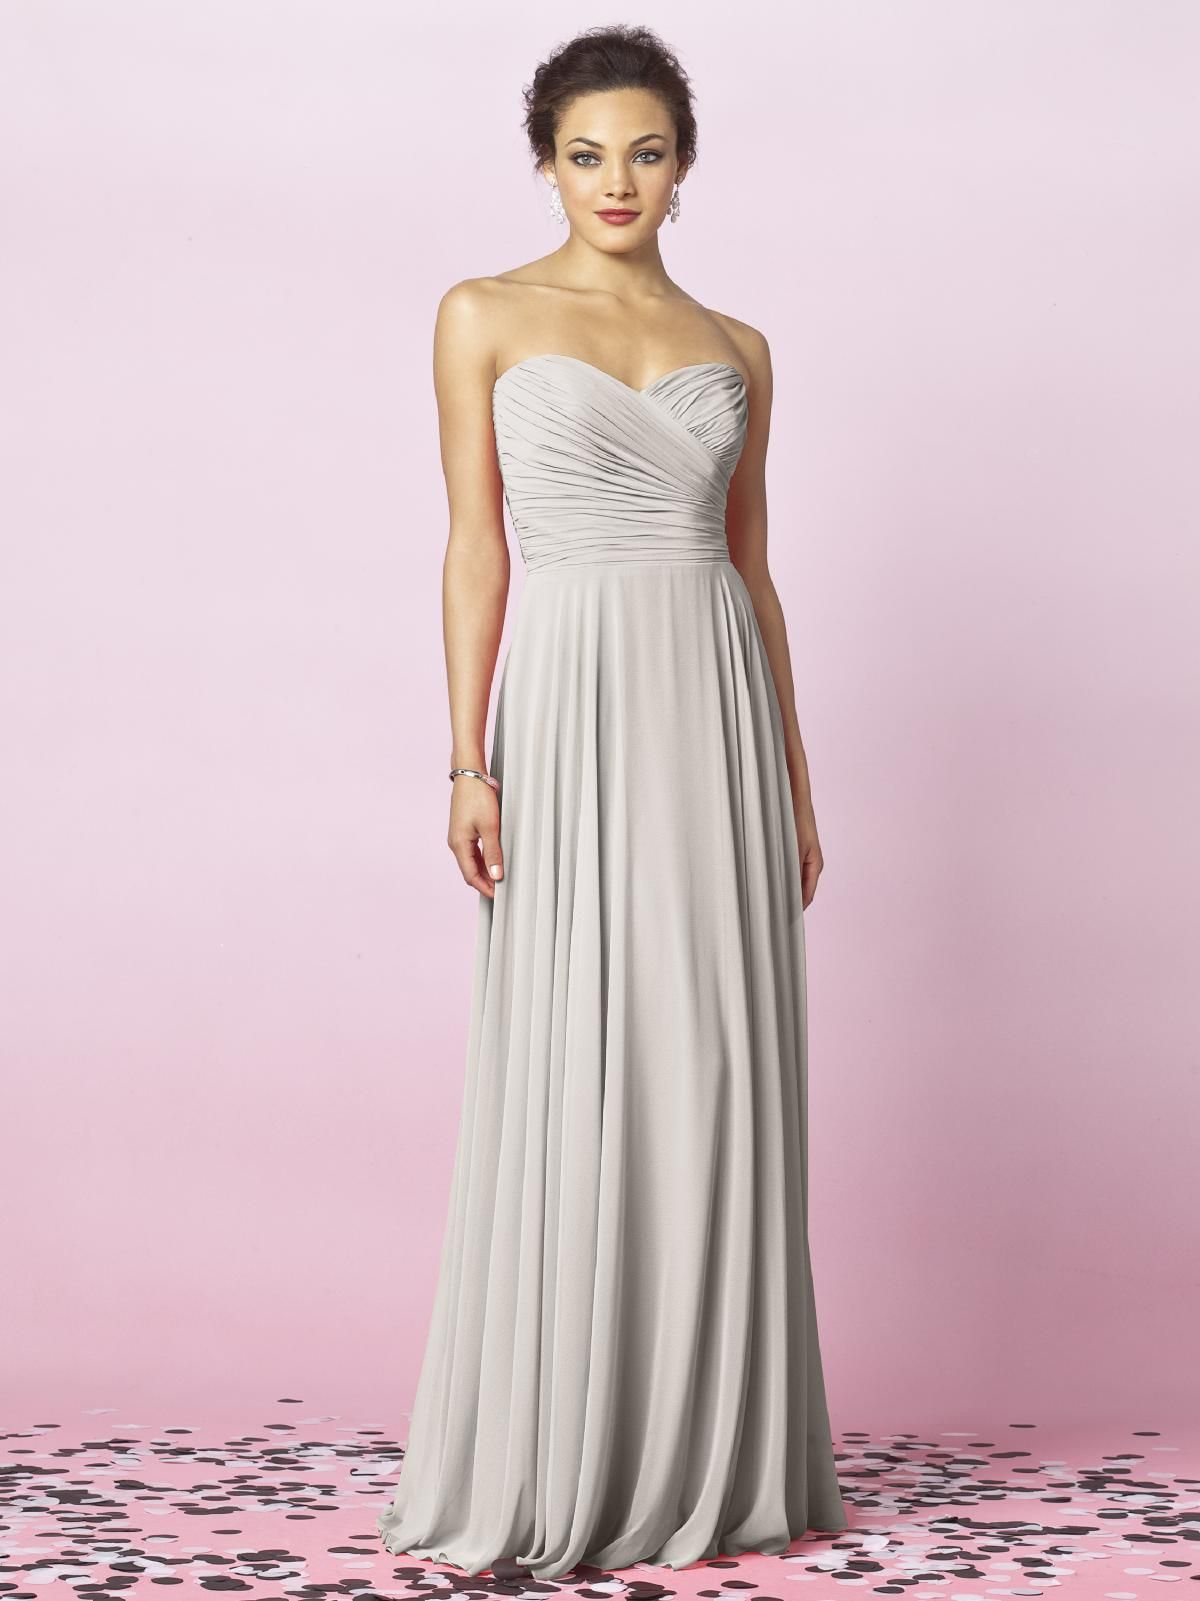 After six bridesmaids style 6639 oyster dressing romantic dessy collection bridesmaids style 6639 strapless full length lux chiffon dress with draped bodice and full skirt ombrellifo Gallery